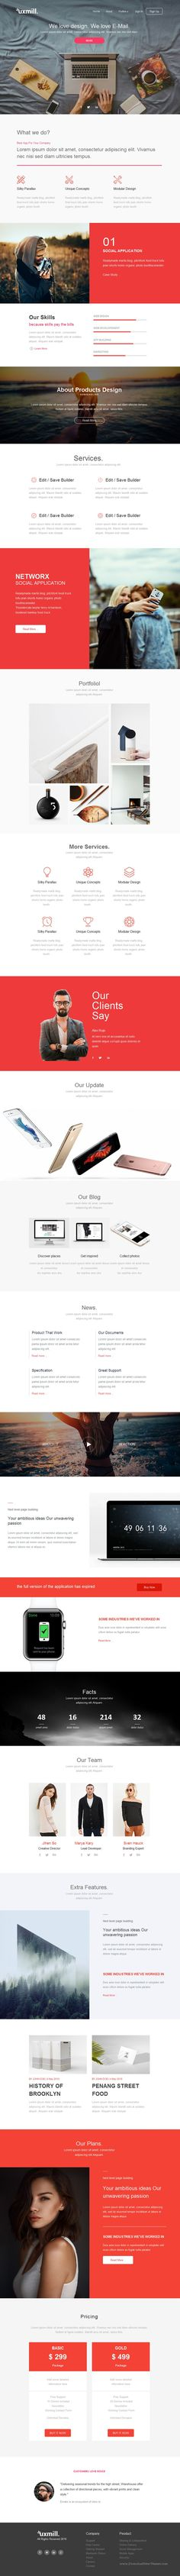 Uxmill is best Responsive Email Template for #Marketing donwload Now! #Newsletter #emailtemplate